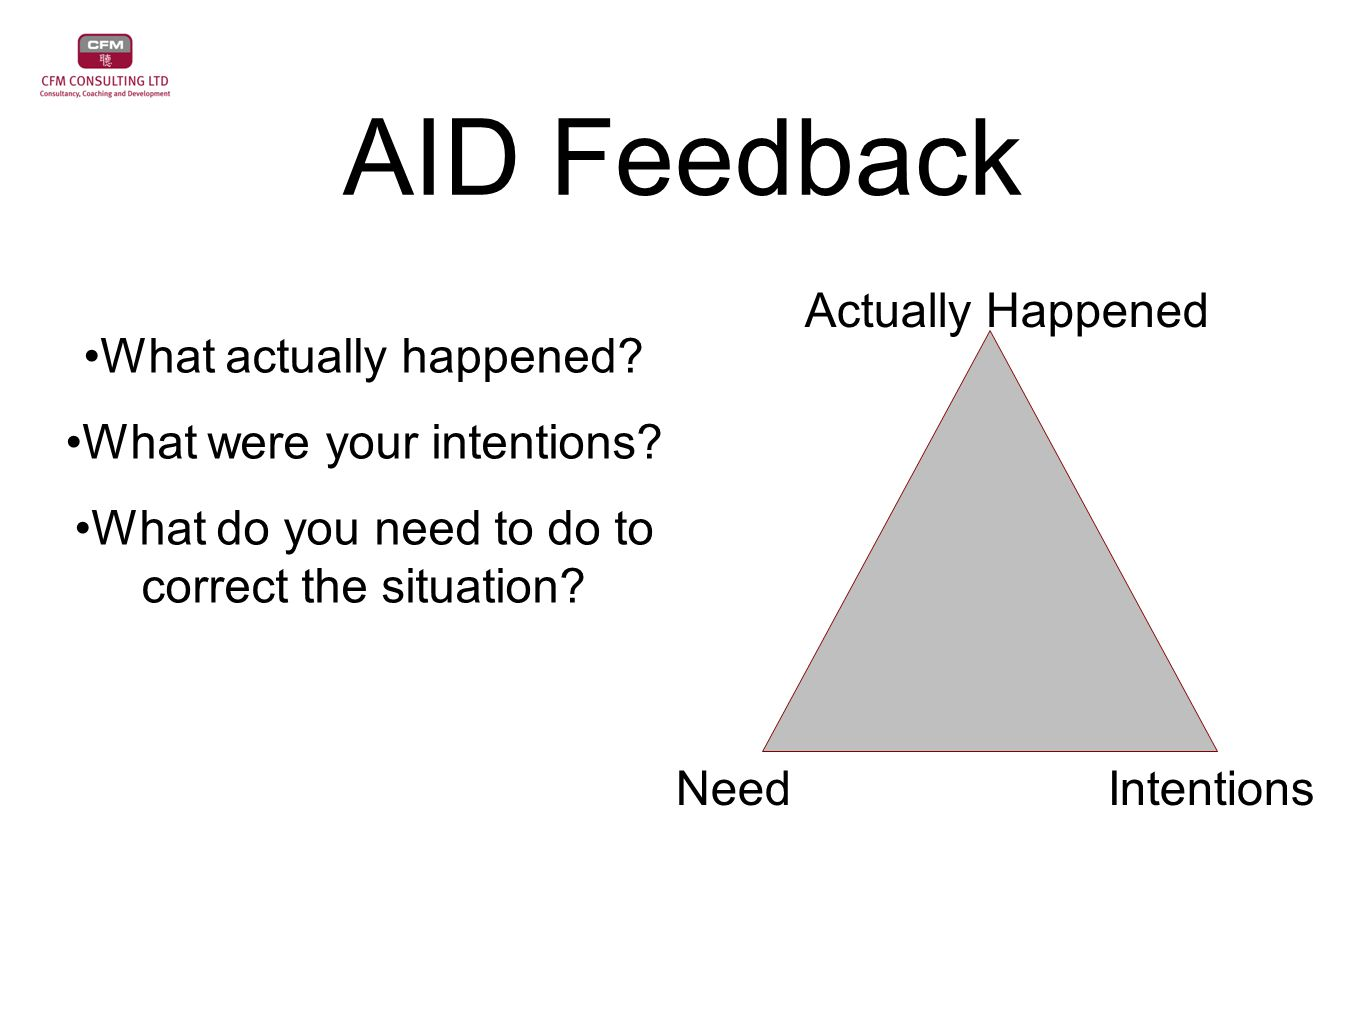 AID Feedback Actually Happened IntentionsNeed What actually happened? What were your intentions? What do you need to do to correct the situation?